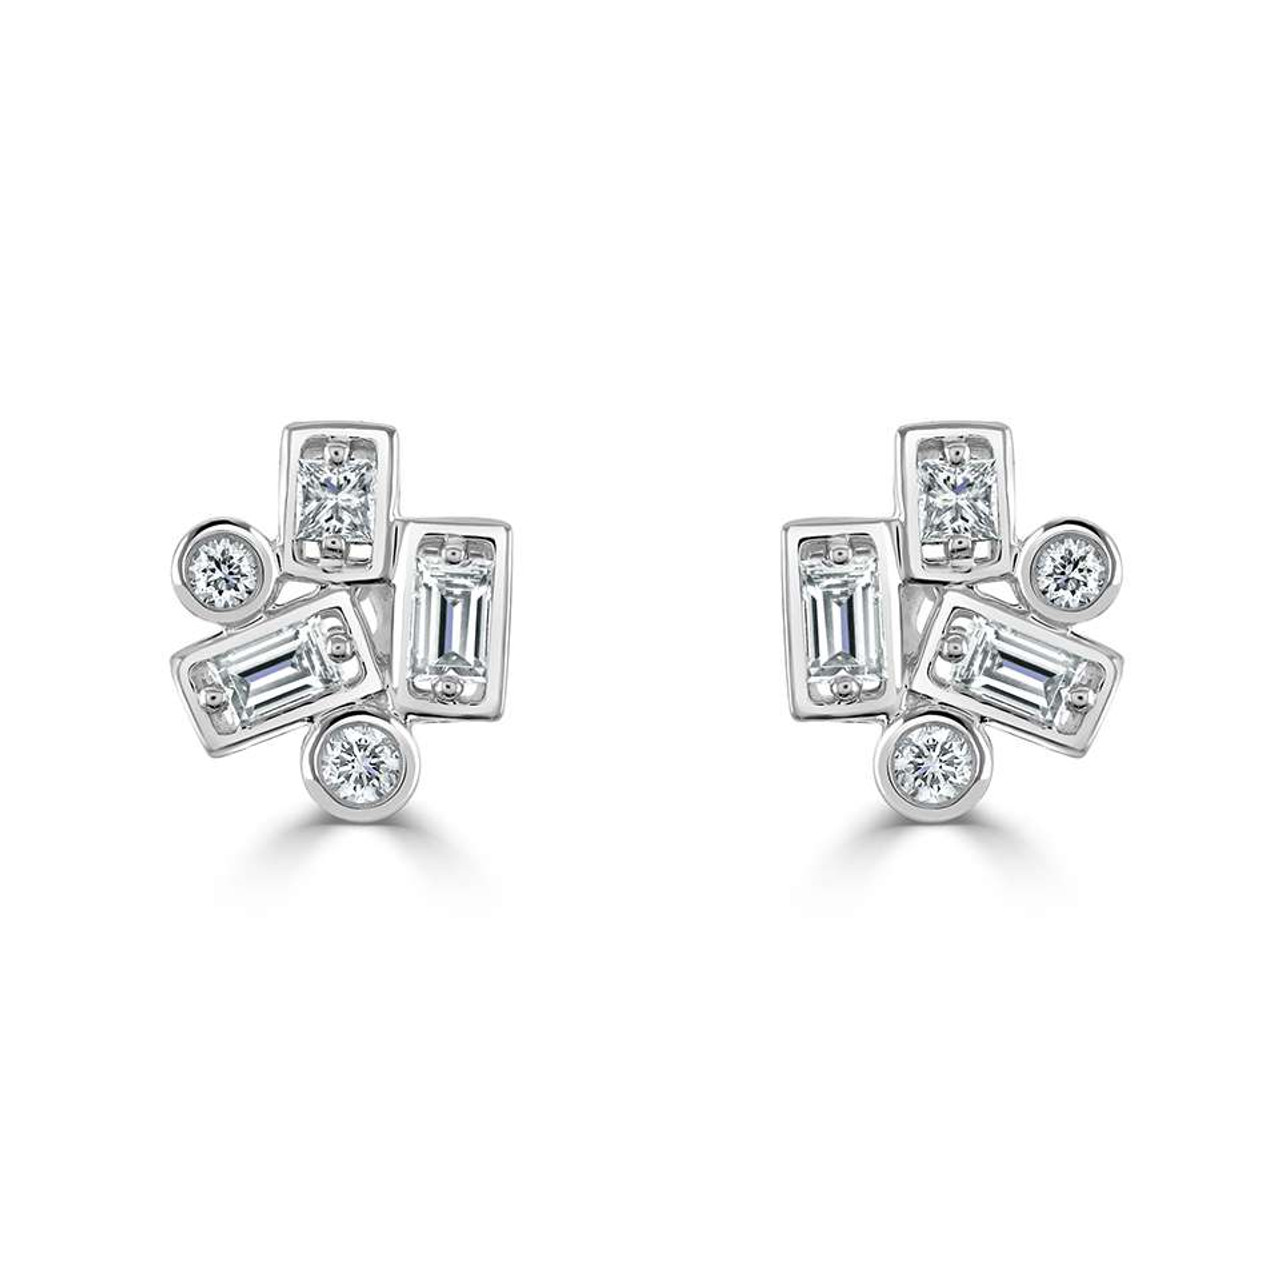 18ct White Gold Diamond Confetti Stud Earrings